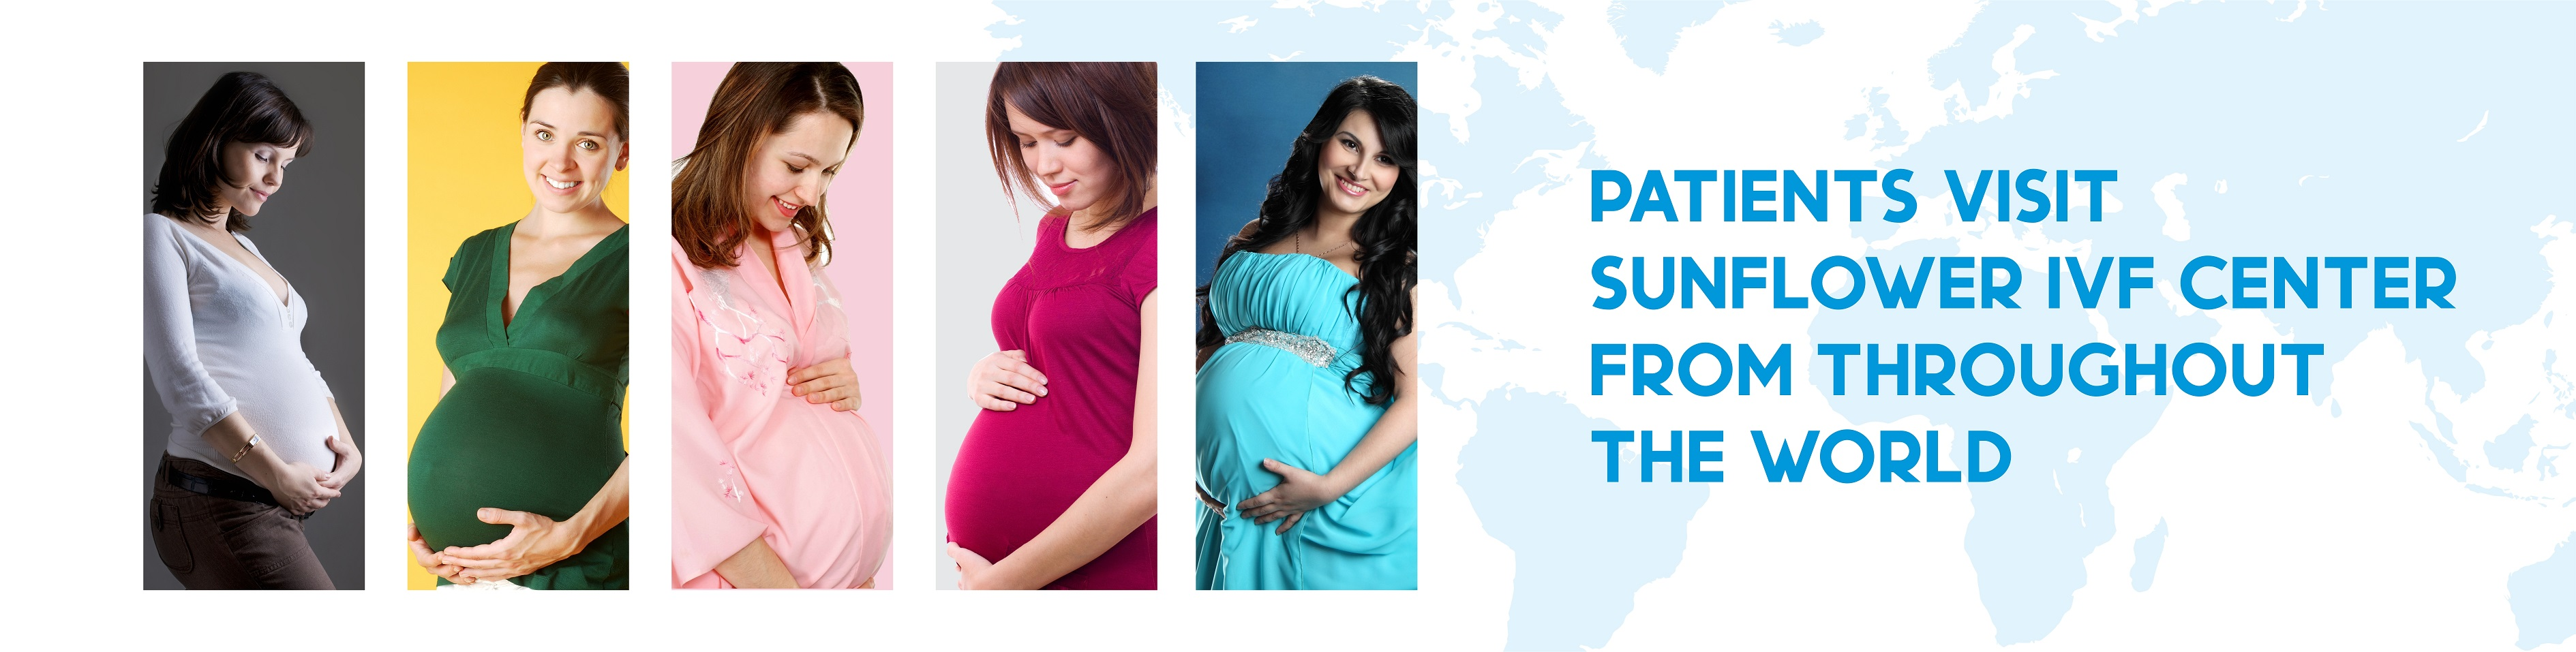 All India Fertility & IVF Ranking Survey 2018